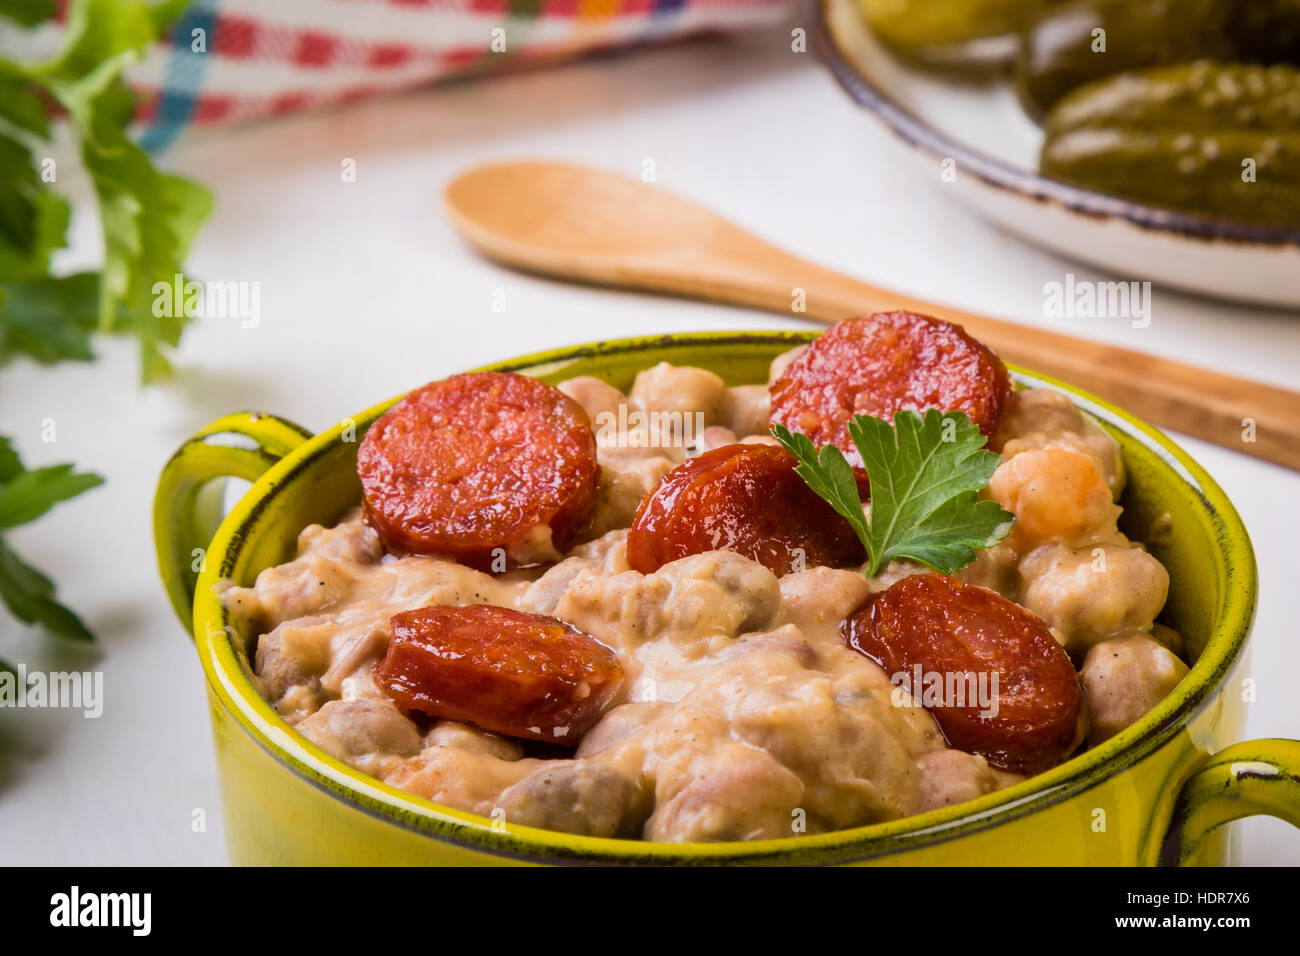 bean stew with sausage in green bowl - Stock Image